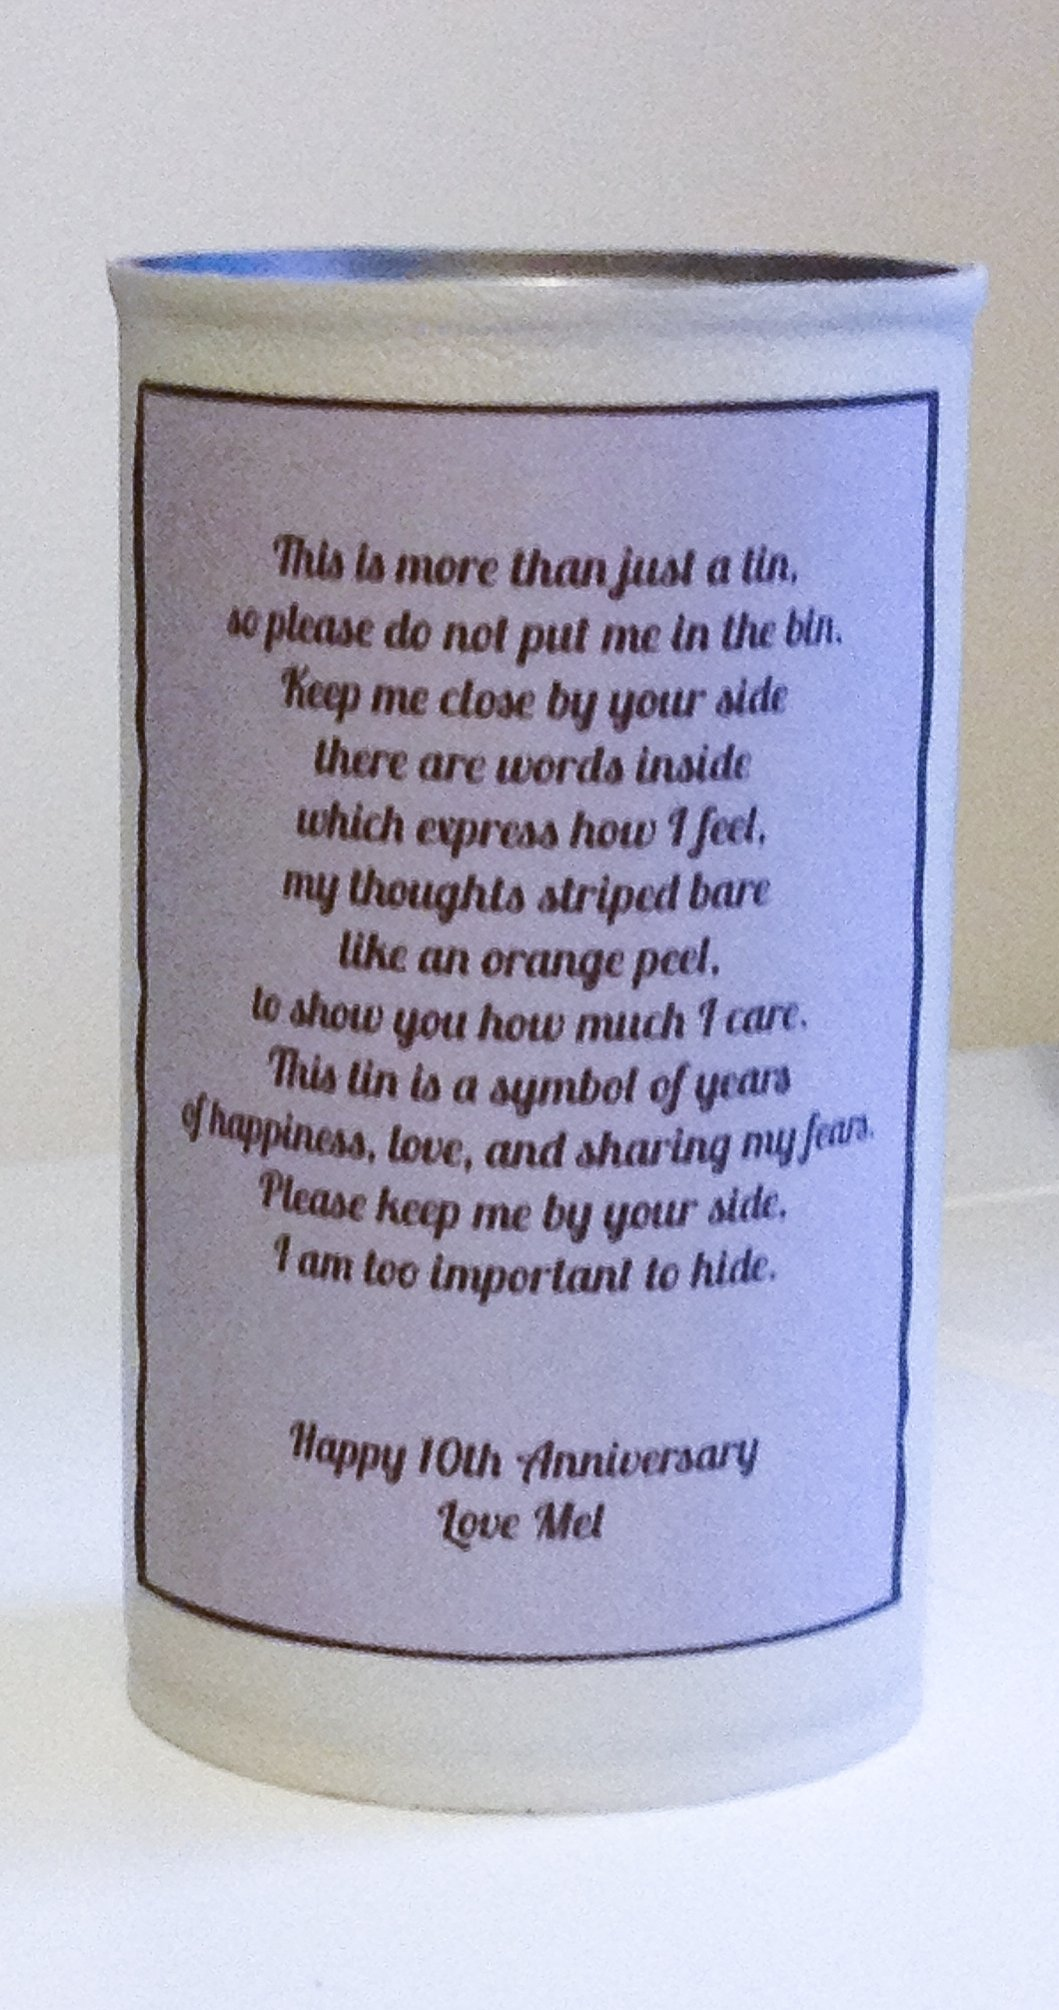 10 Awesome 10Th Anniversary Ideas For Him a diy 10th anniversary gift theoriginalthread 2020